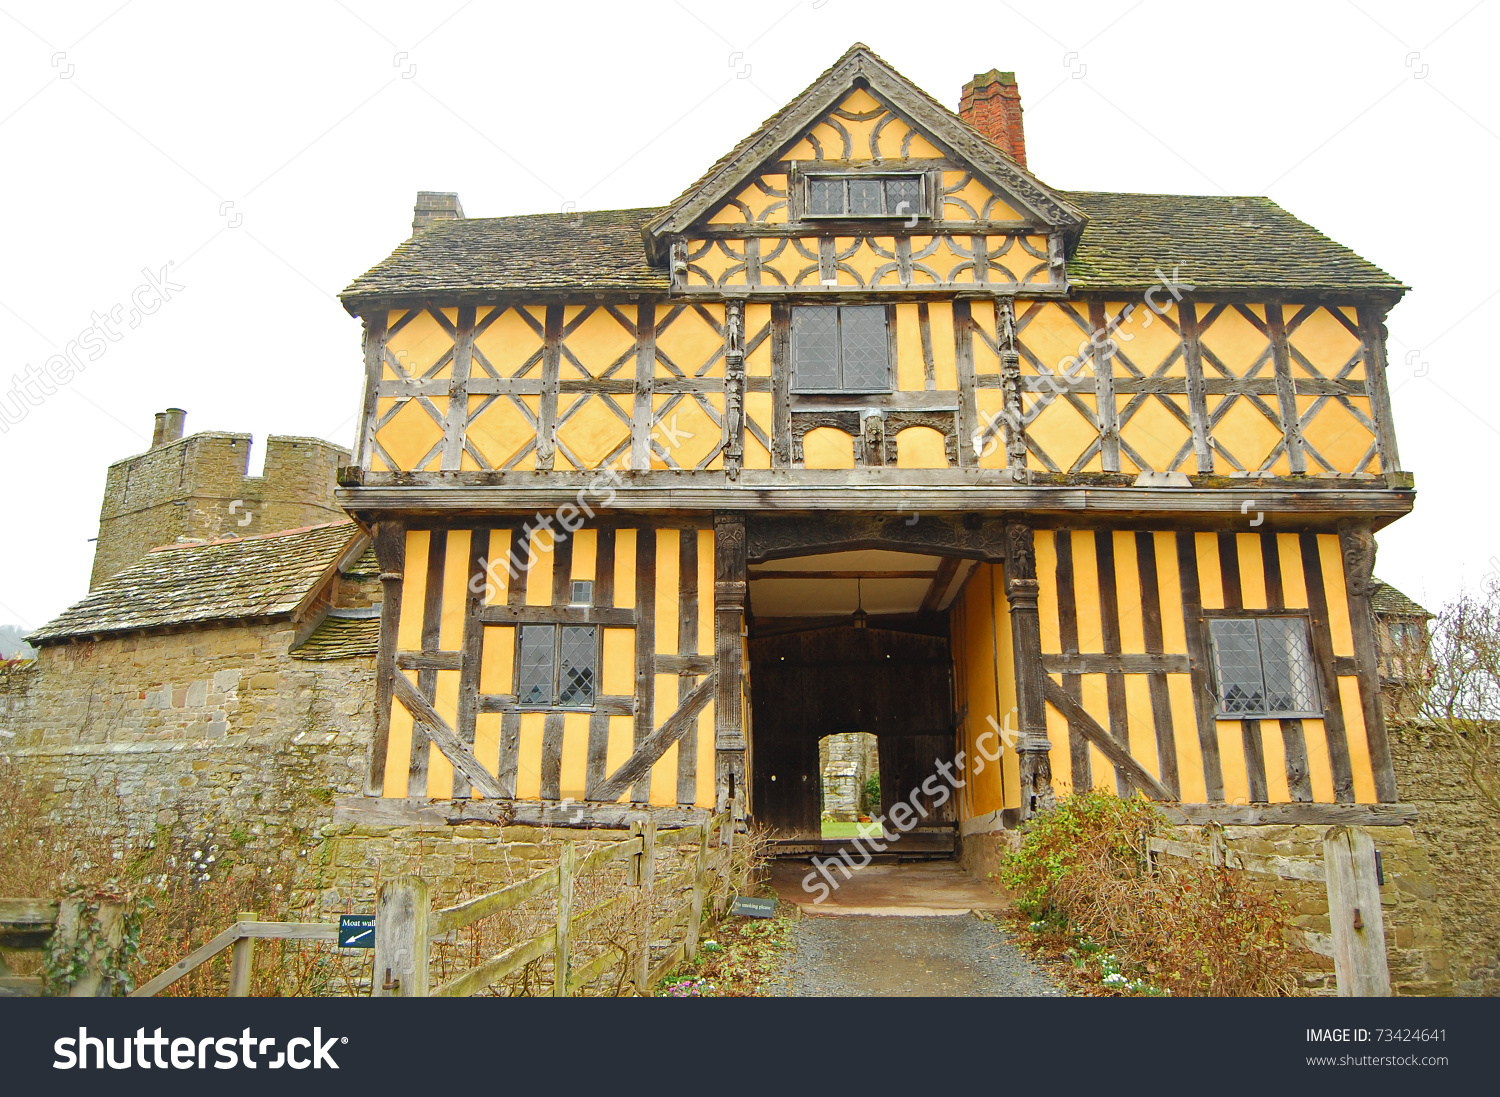 View Of The Elizabethan Gatehouse At Stokesay Castle In Shropshire.